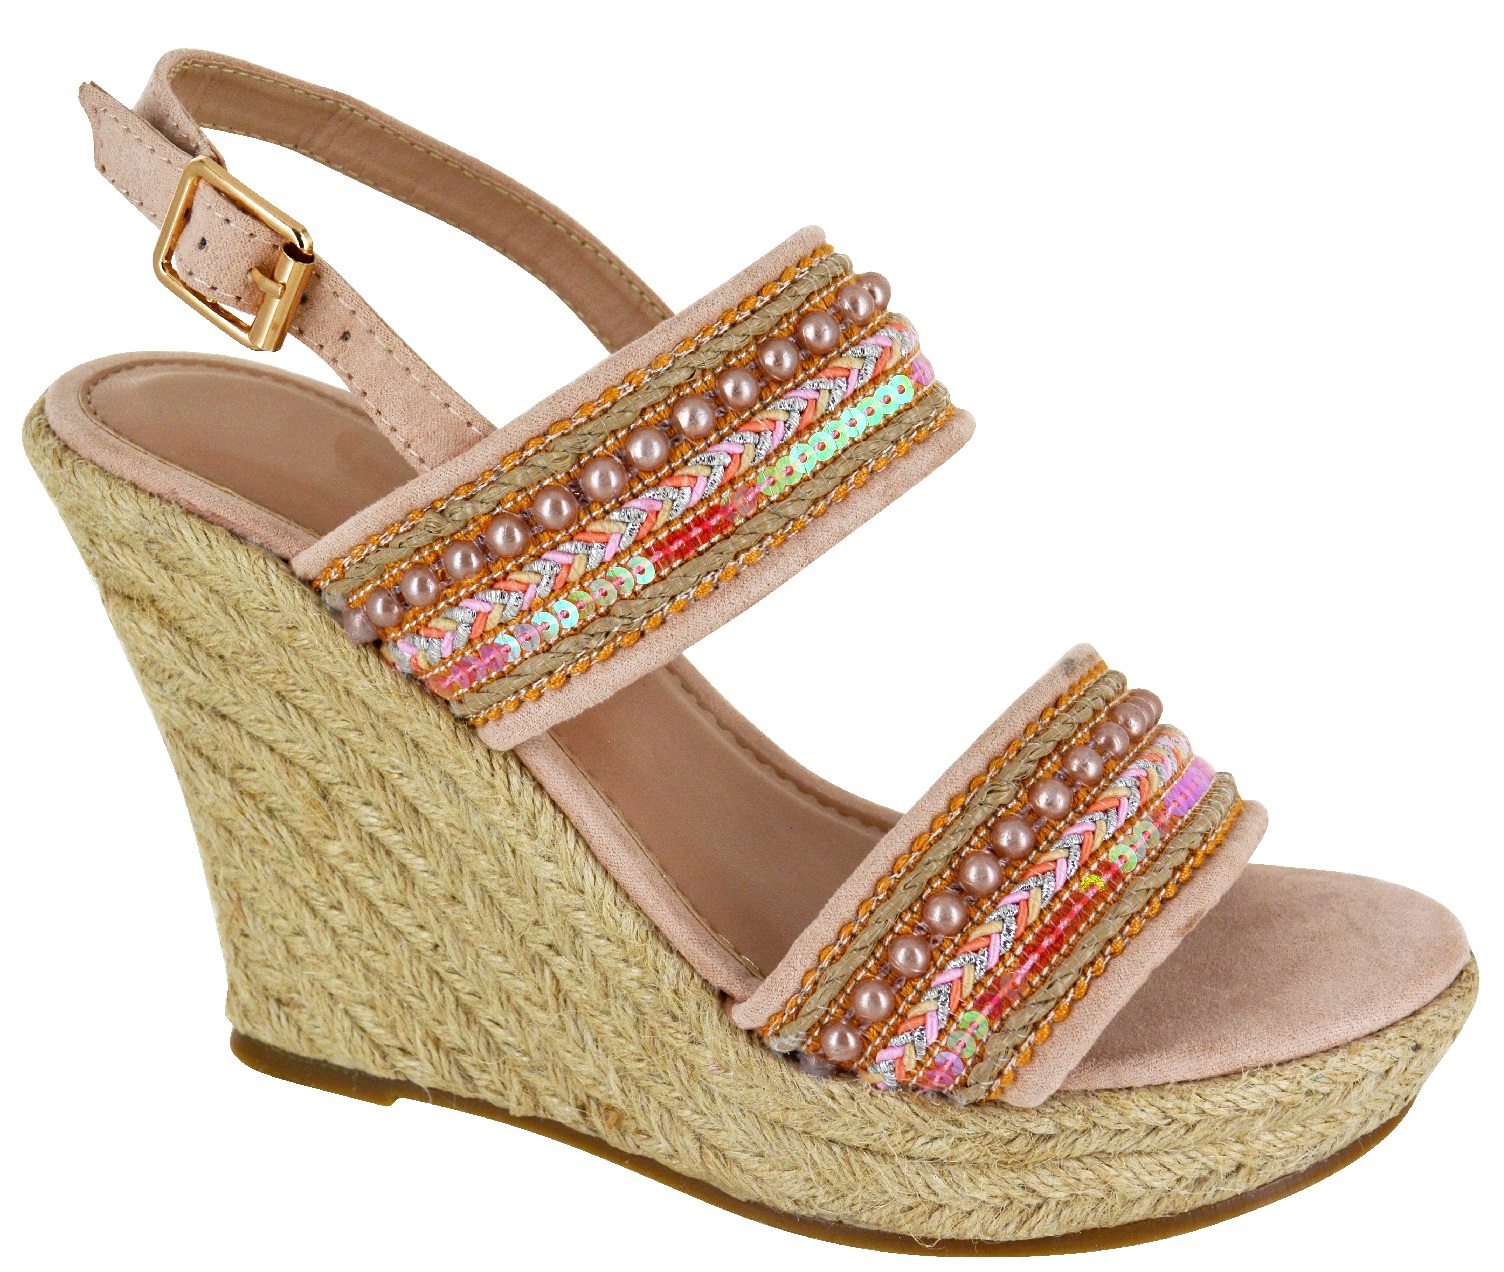 LADIES SUMMER BEACH COMFY HIGH MID HEEL WEDGE ESPADRILLES WOMENS SANDALS SHOES